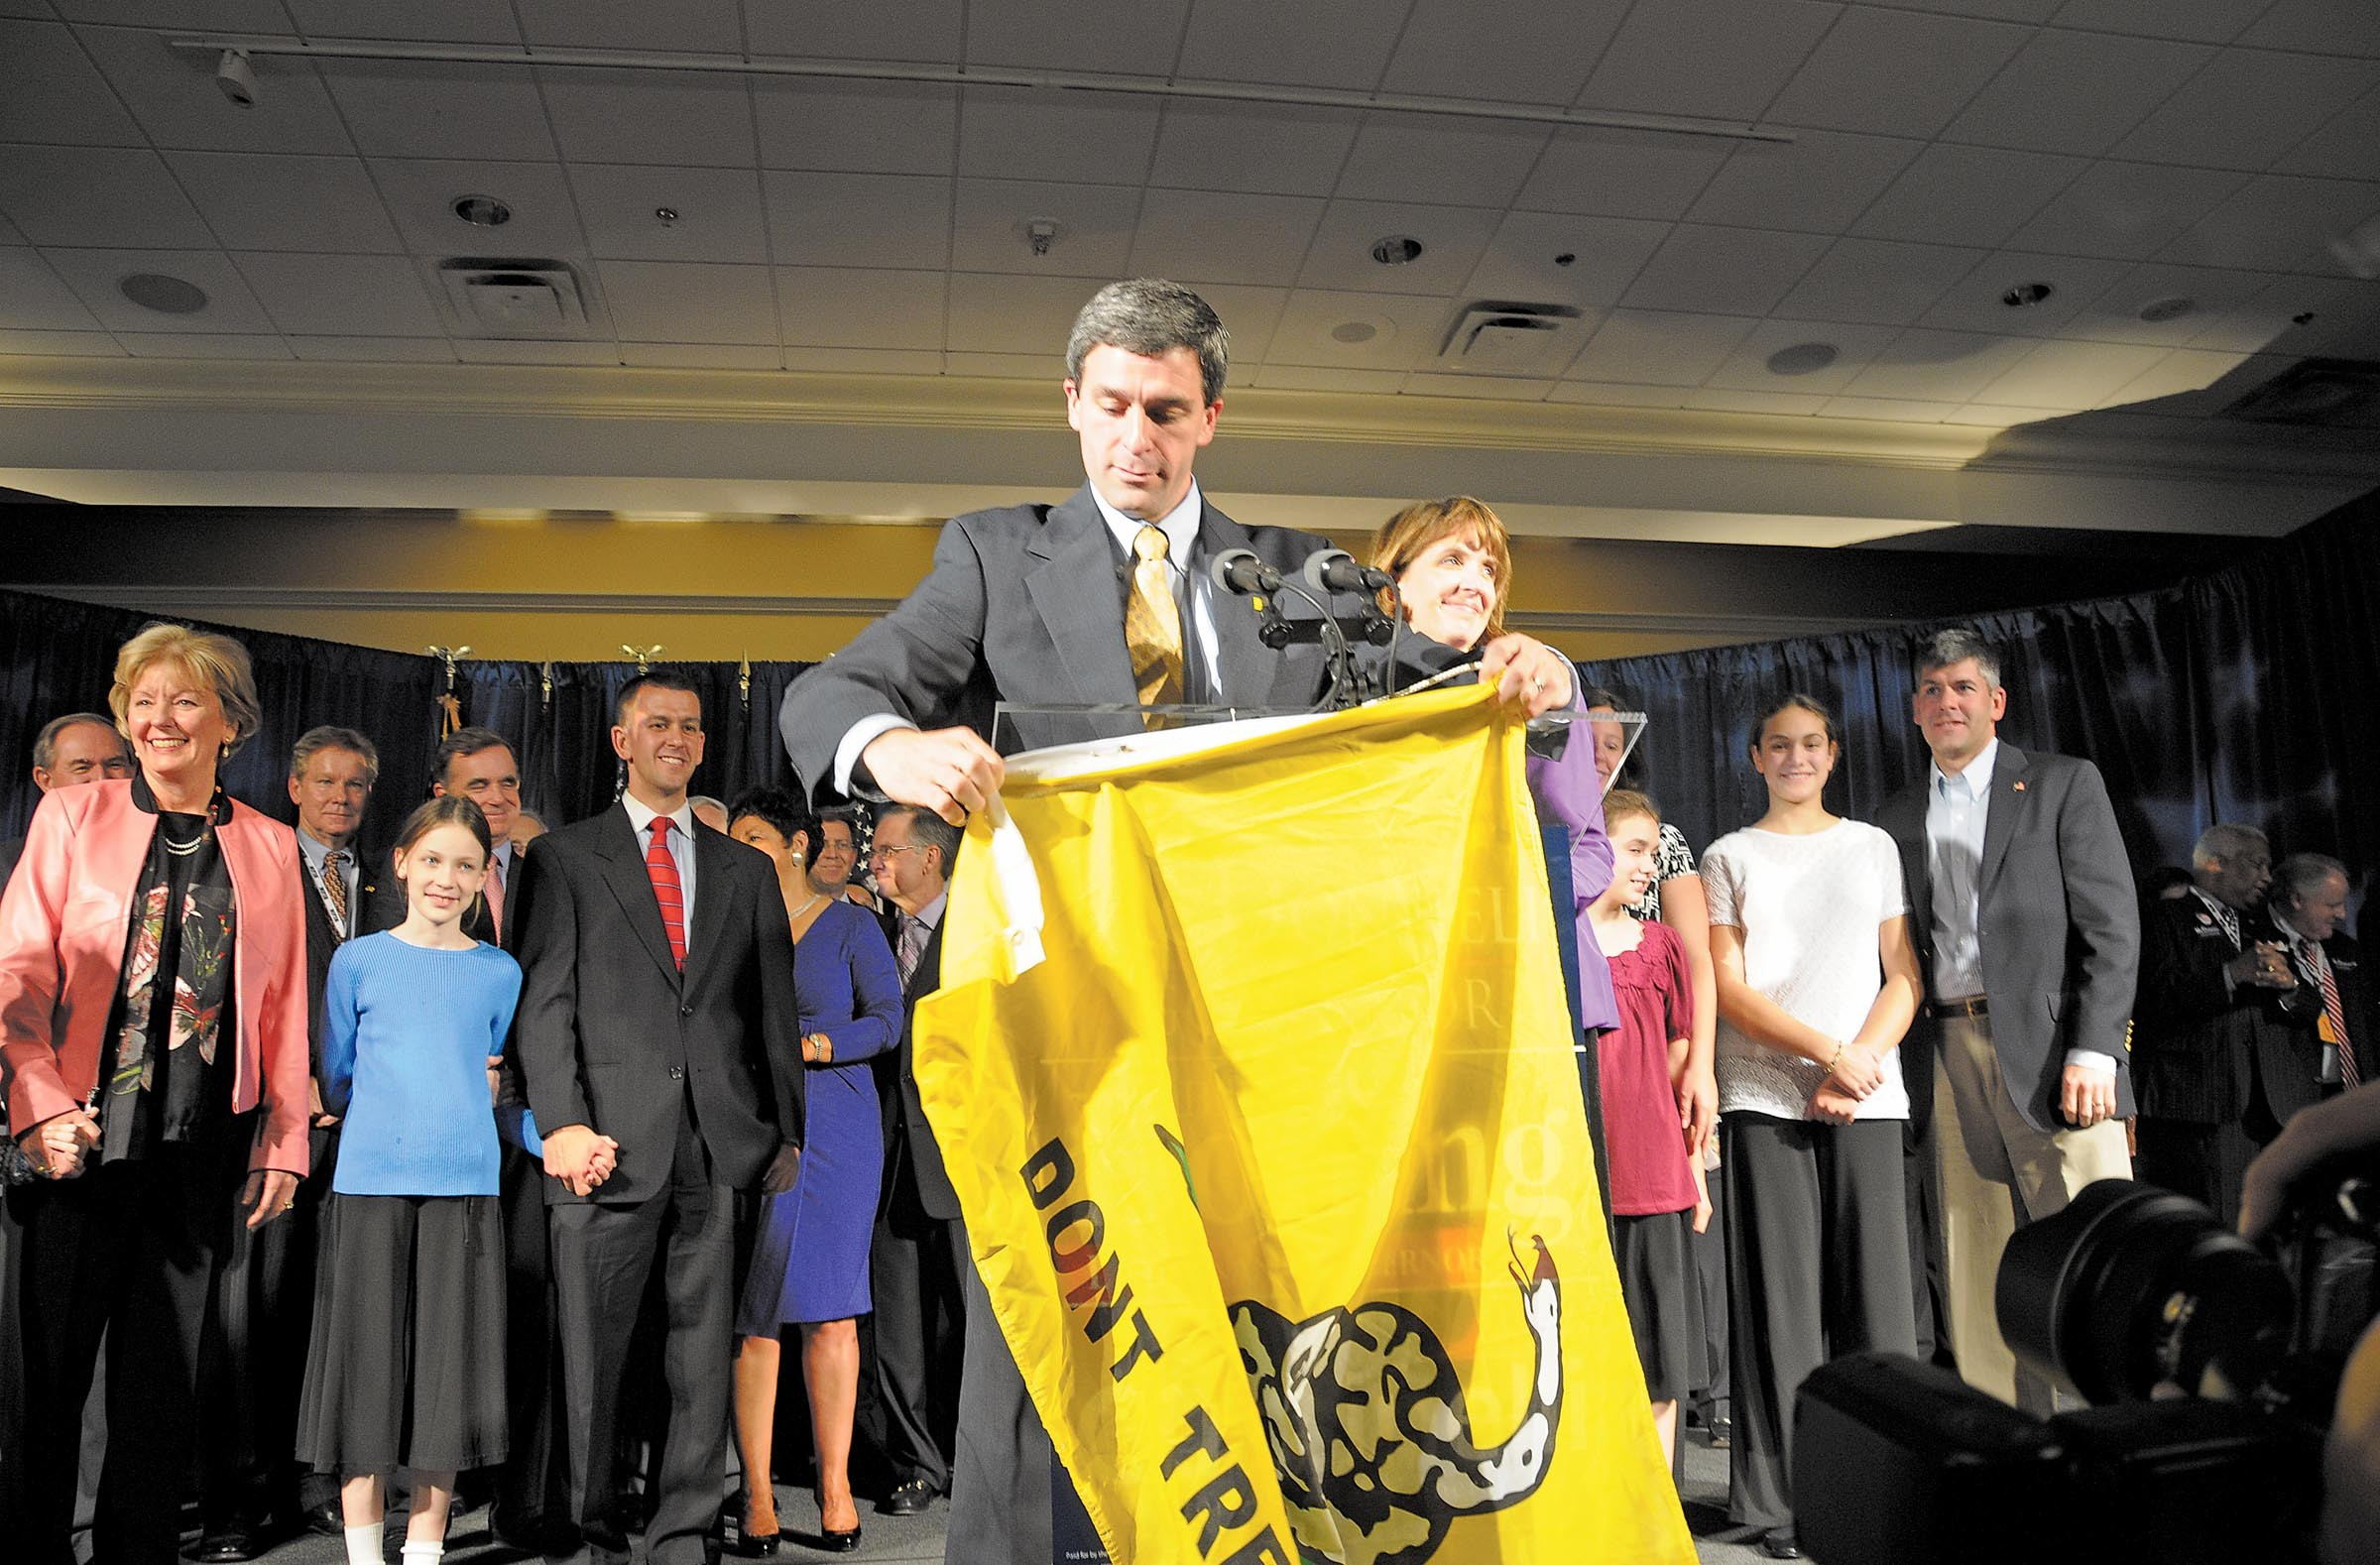 """Ken Cuccinelli, holding a """"don't tread on me"""" flag on inauguration night, was """"tea party before the tea party was tea party,"""" says longtime political analyst Bob Holsworth. - SCOTT ELMQUIST"""